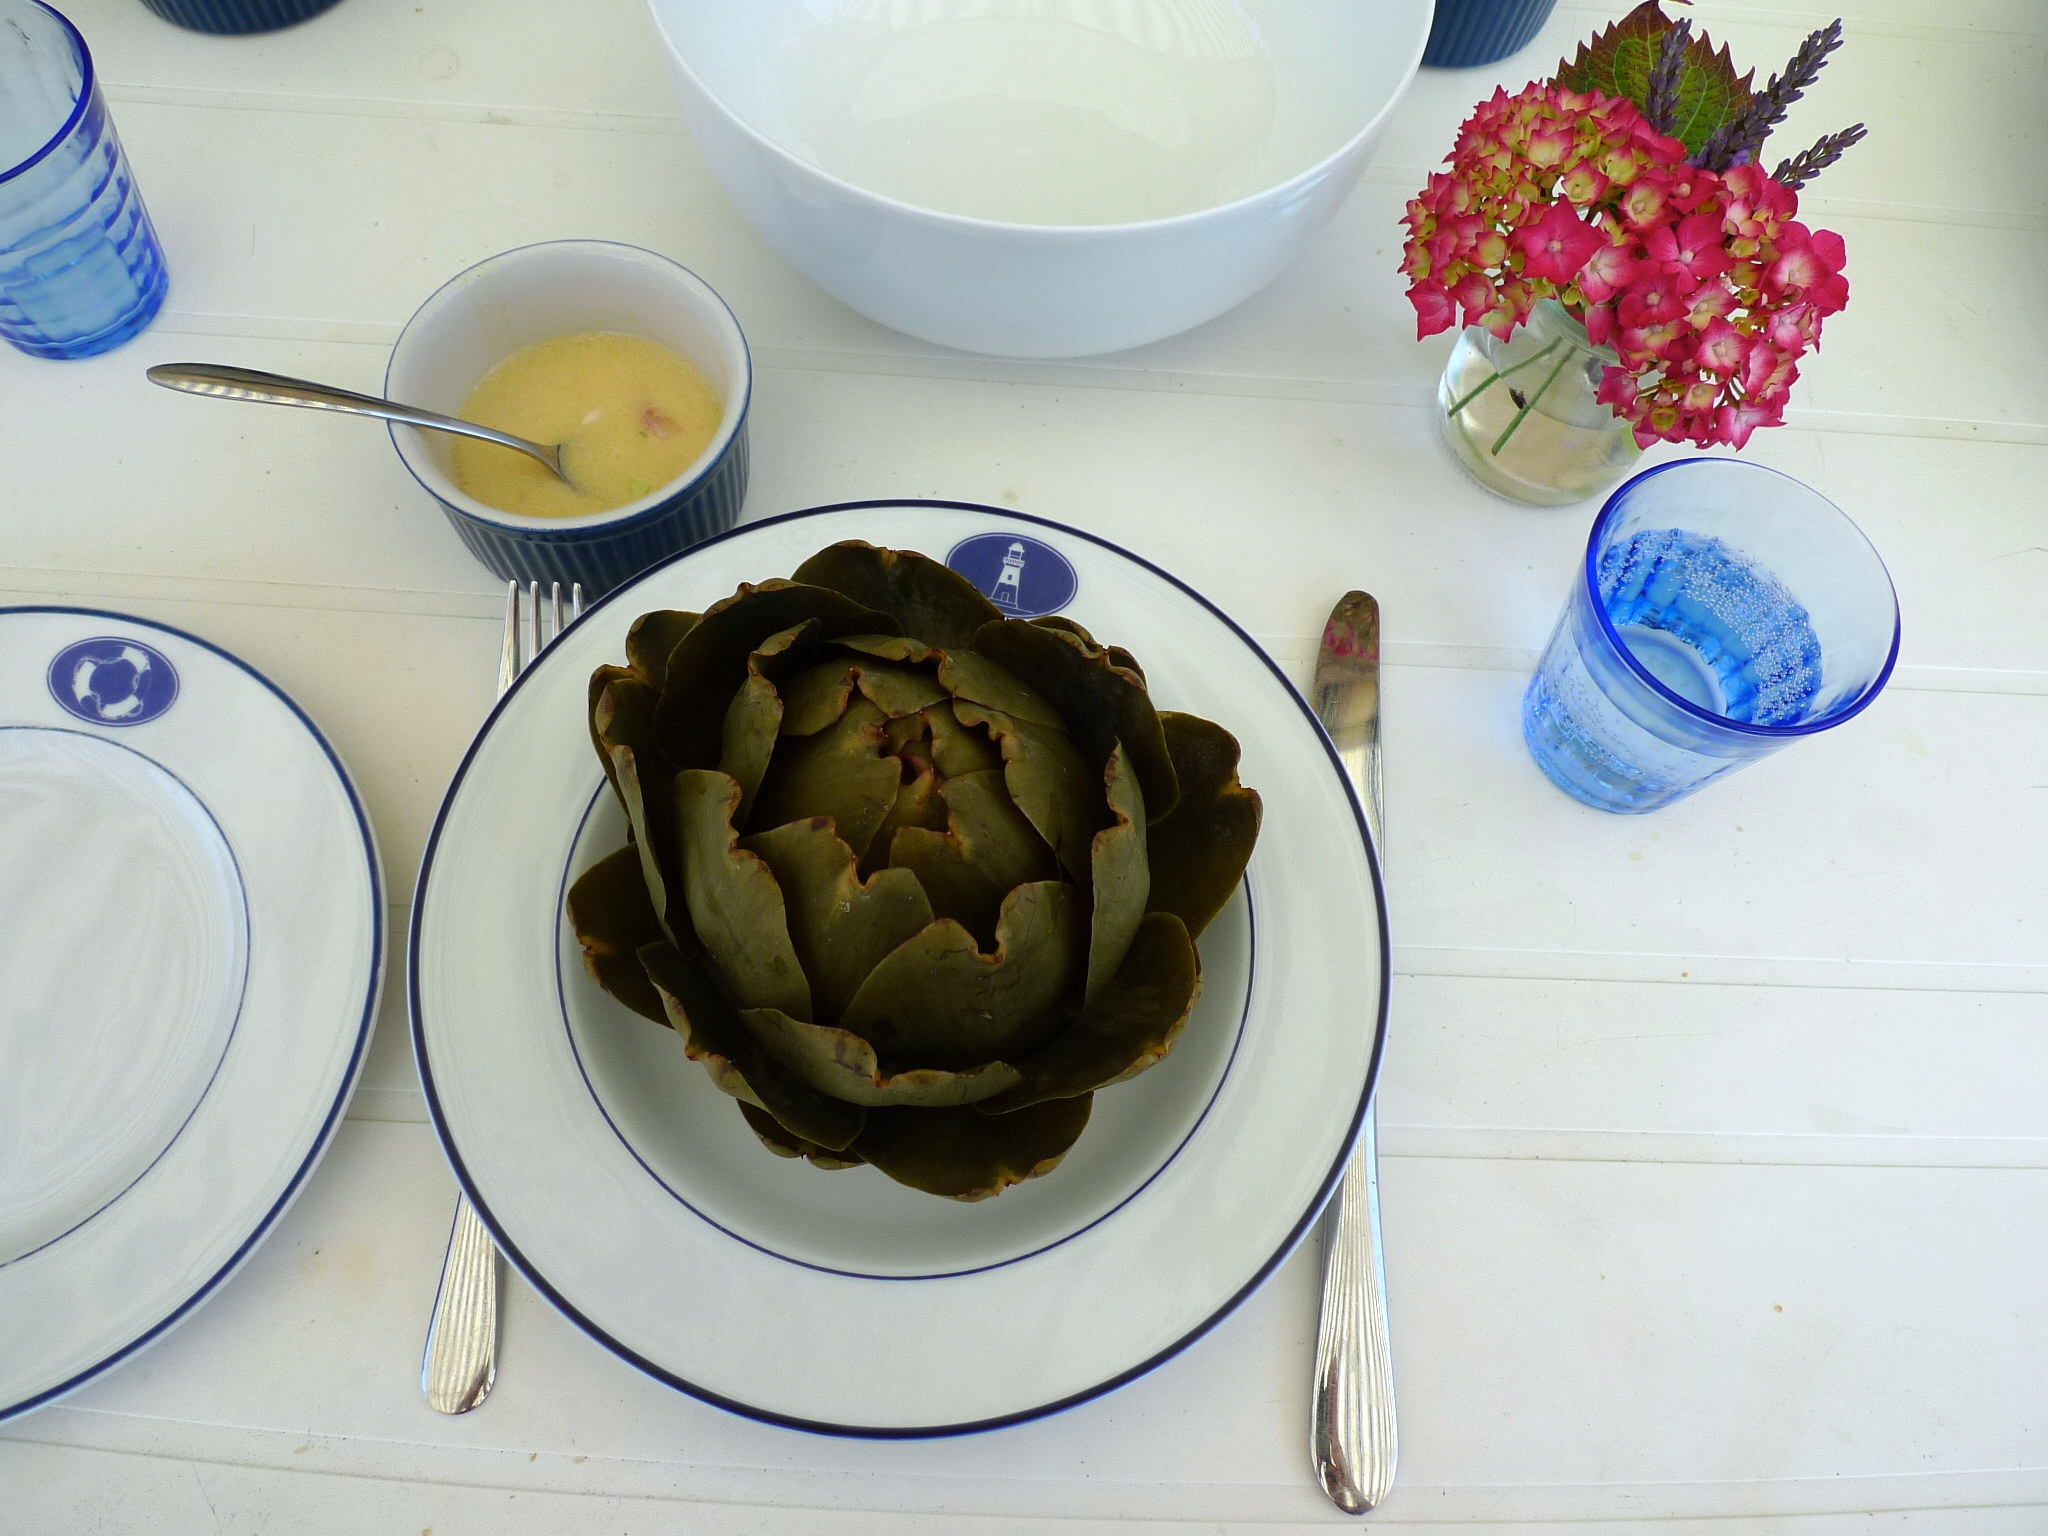 Artichoke for dinner